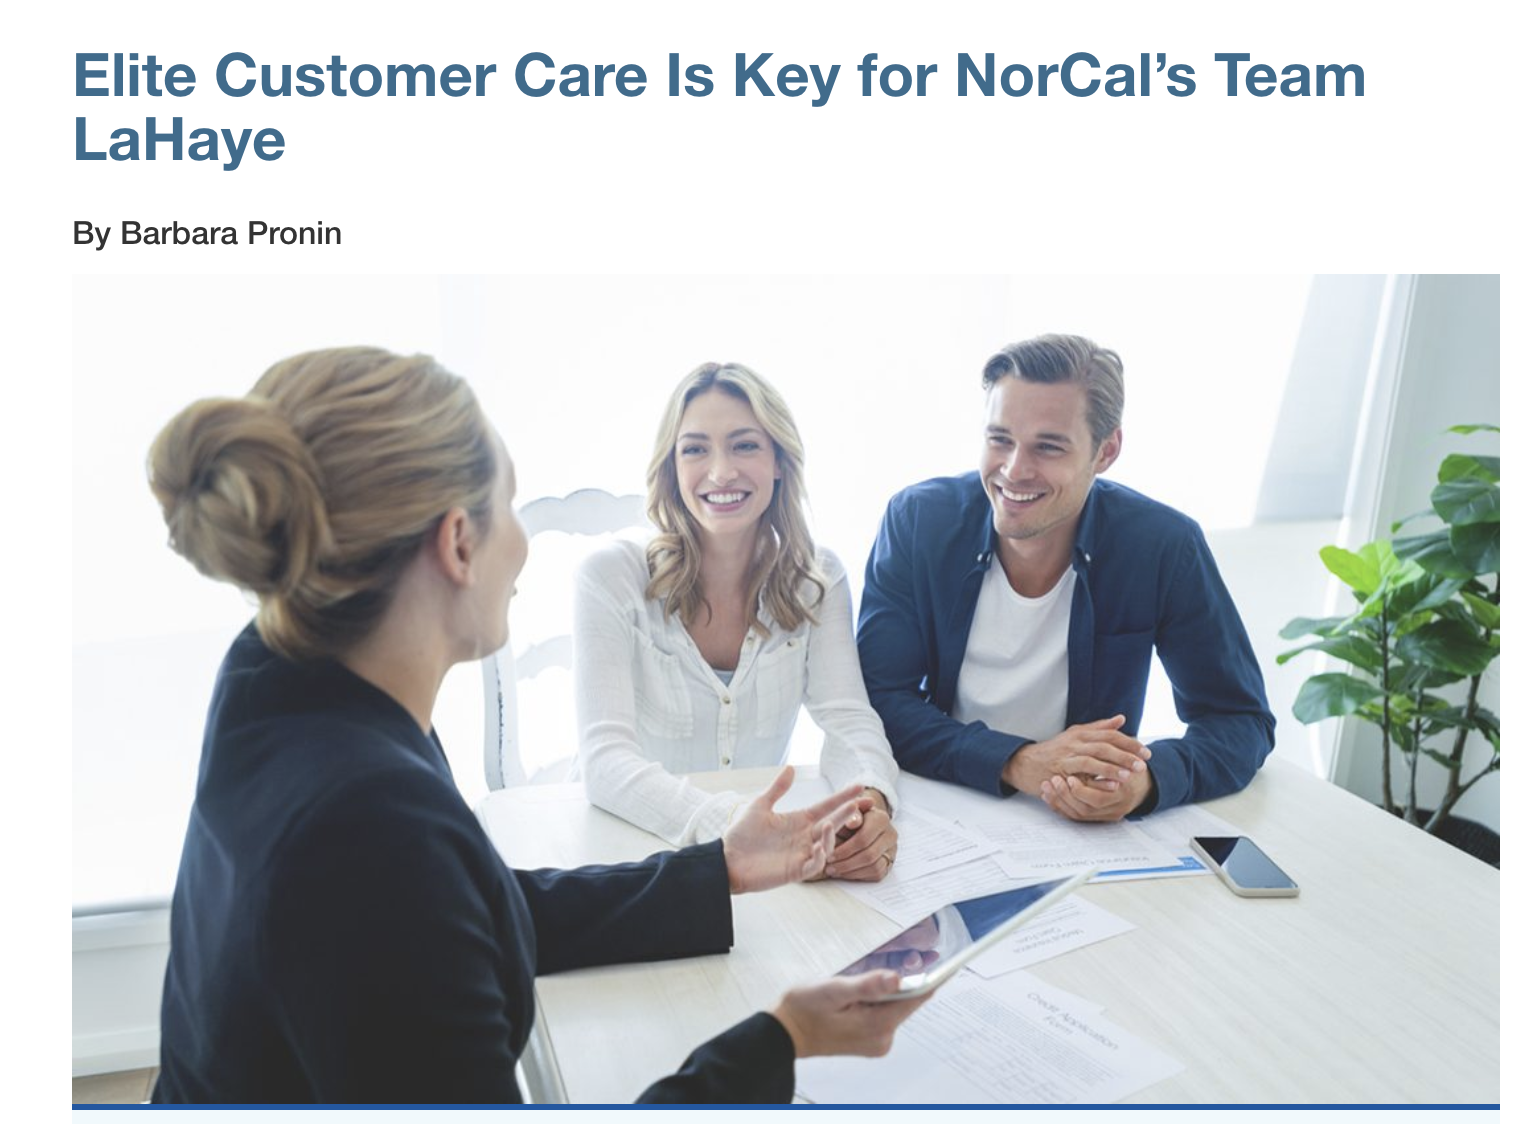 Elite Customer Care Is Key for NorCal's Team LaHaye